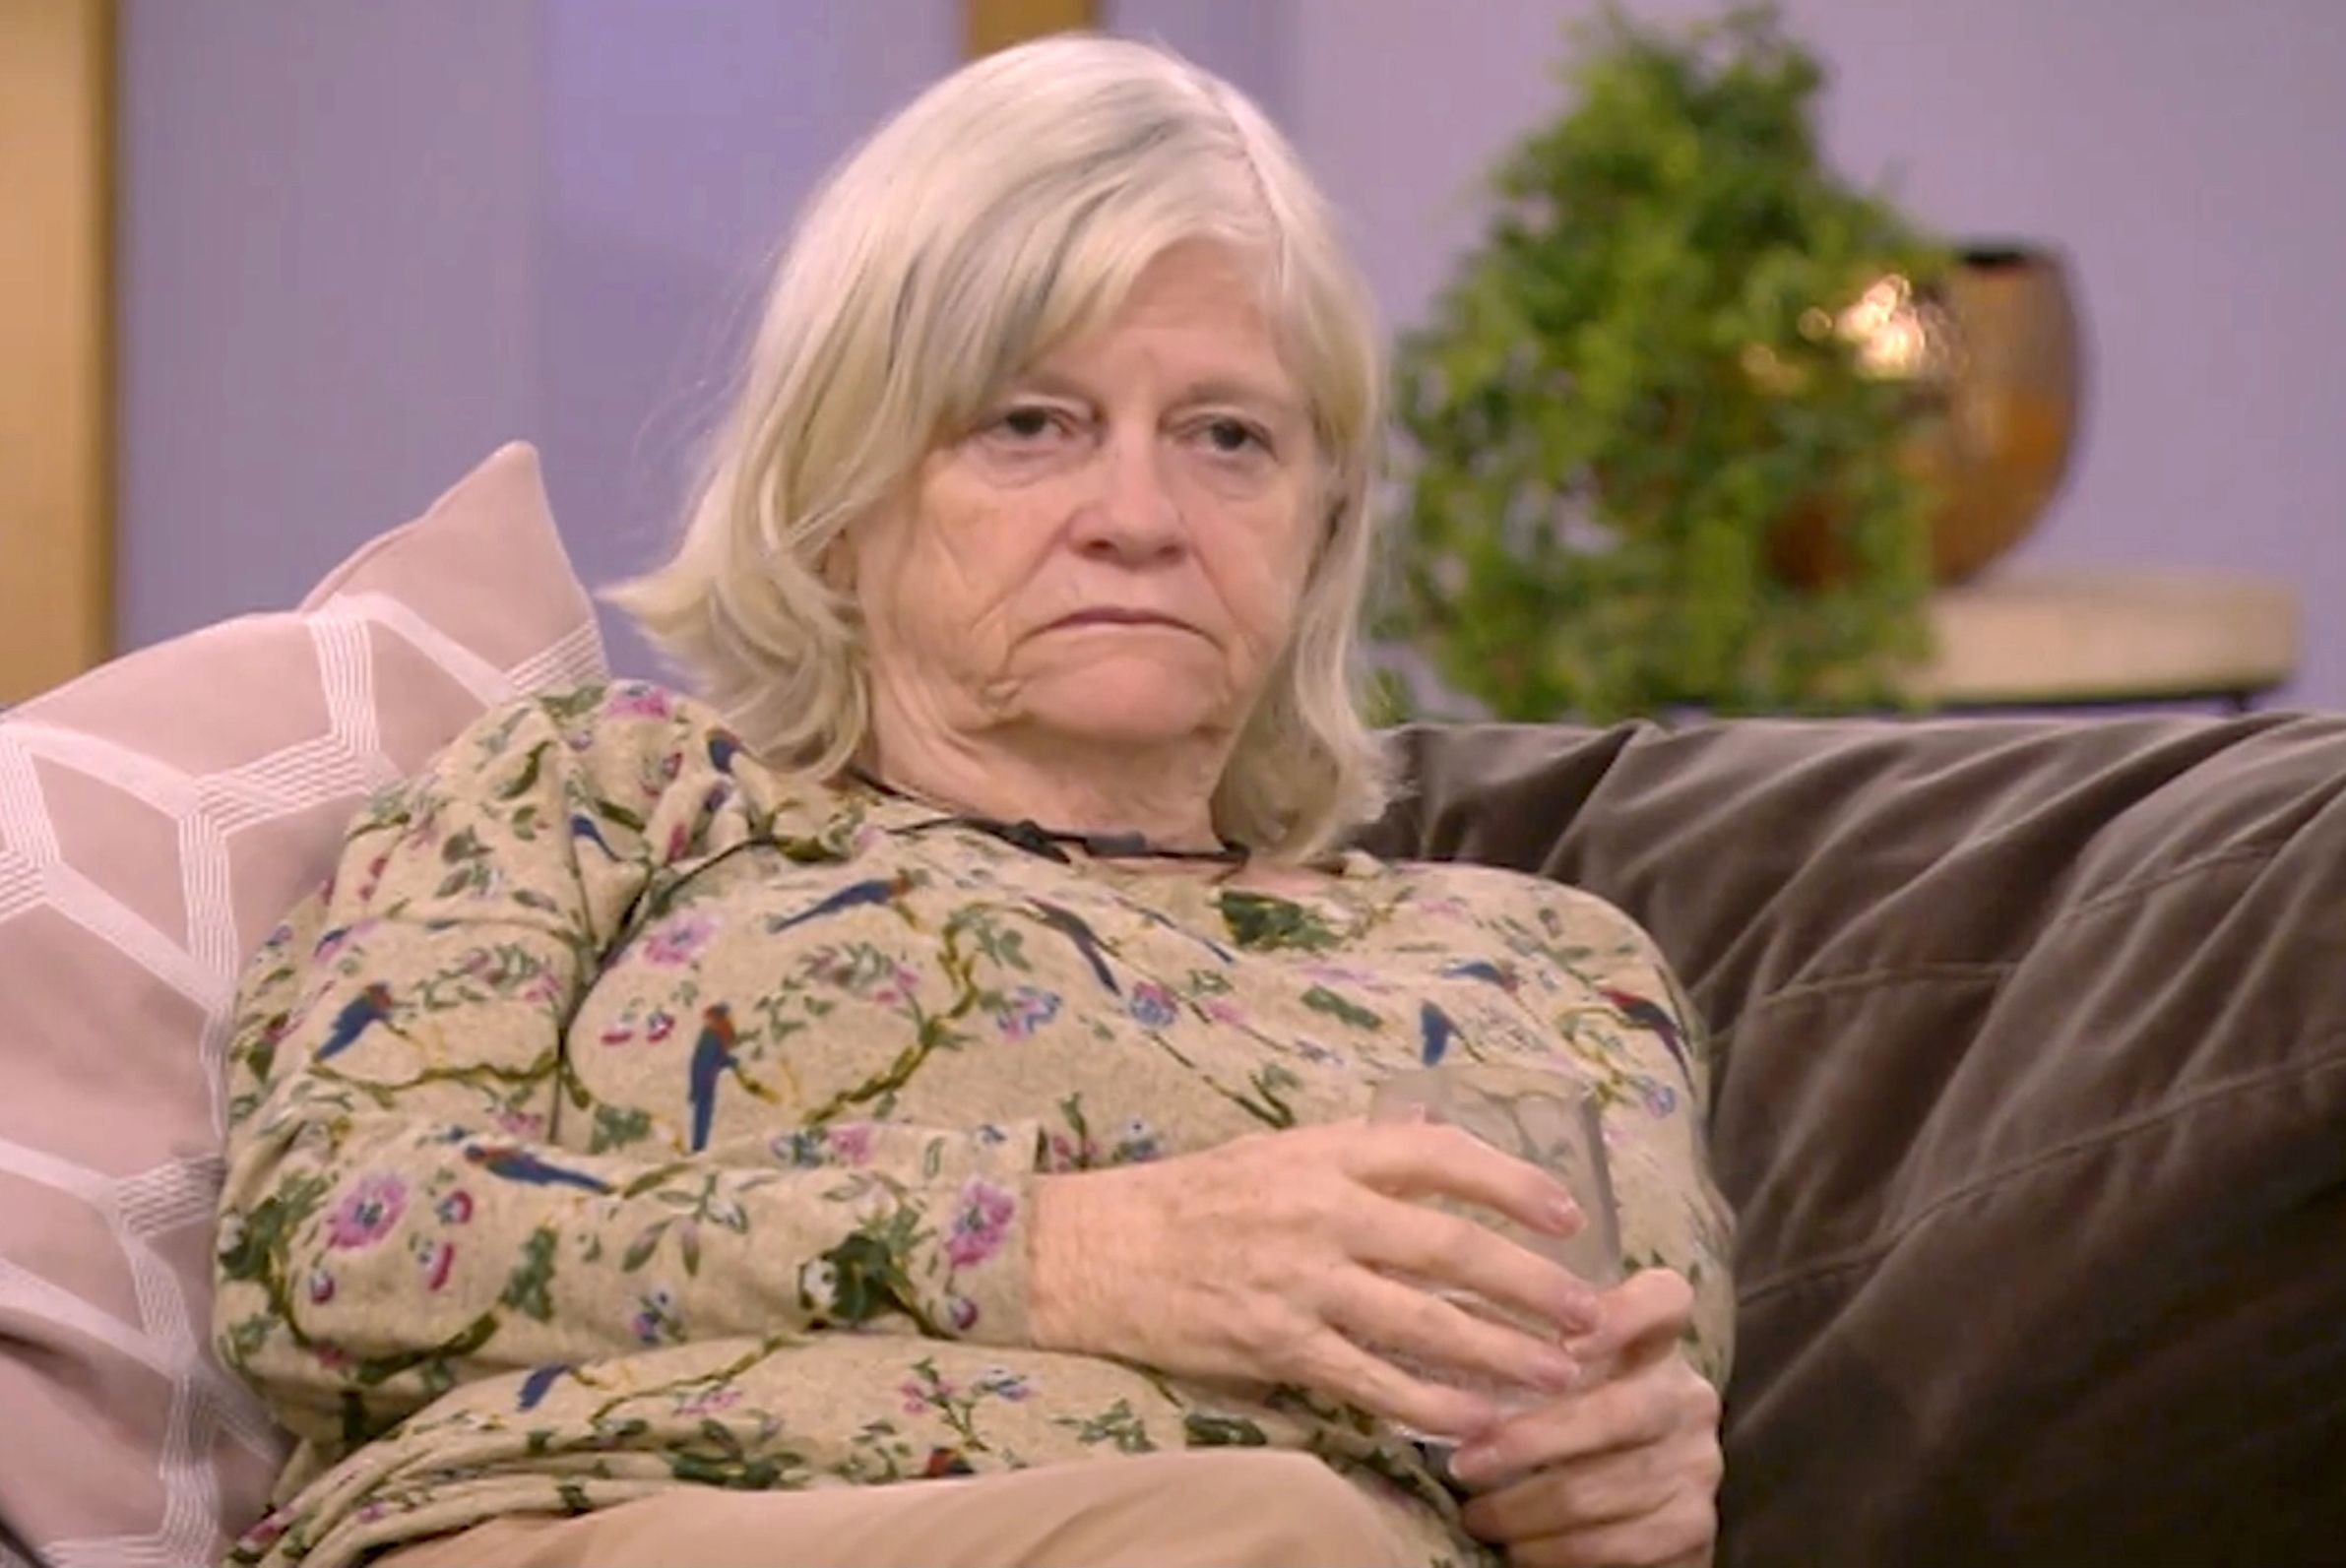 Ann Widdecombe 'CBB' Victory Would Be 'Worst Thing' For The Show, Says Evictee Andrew